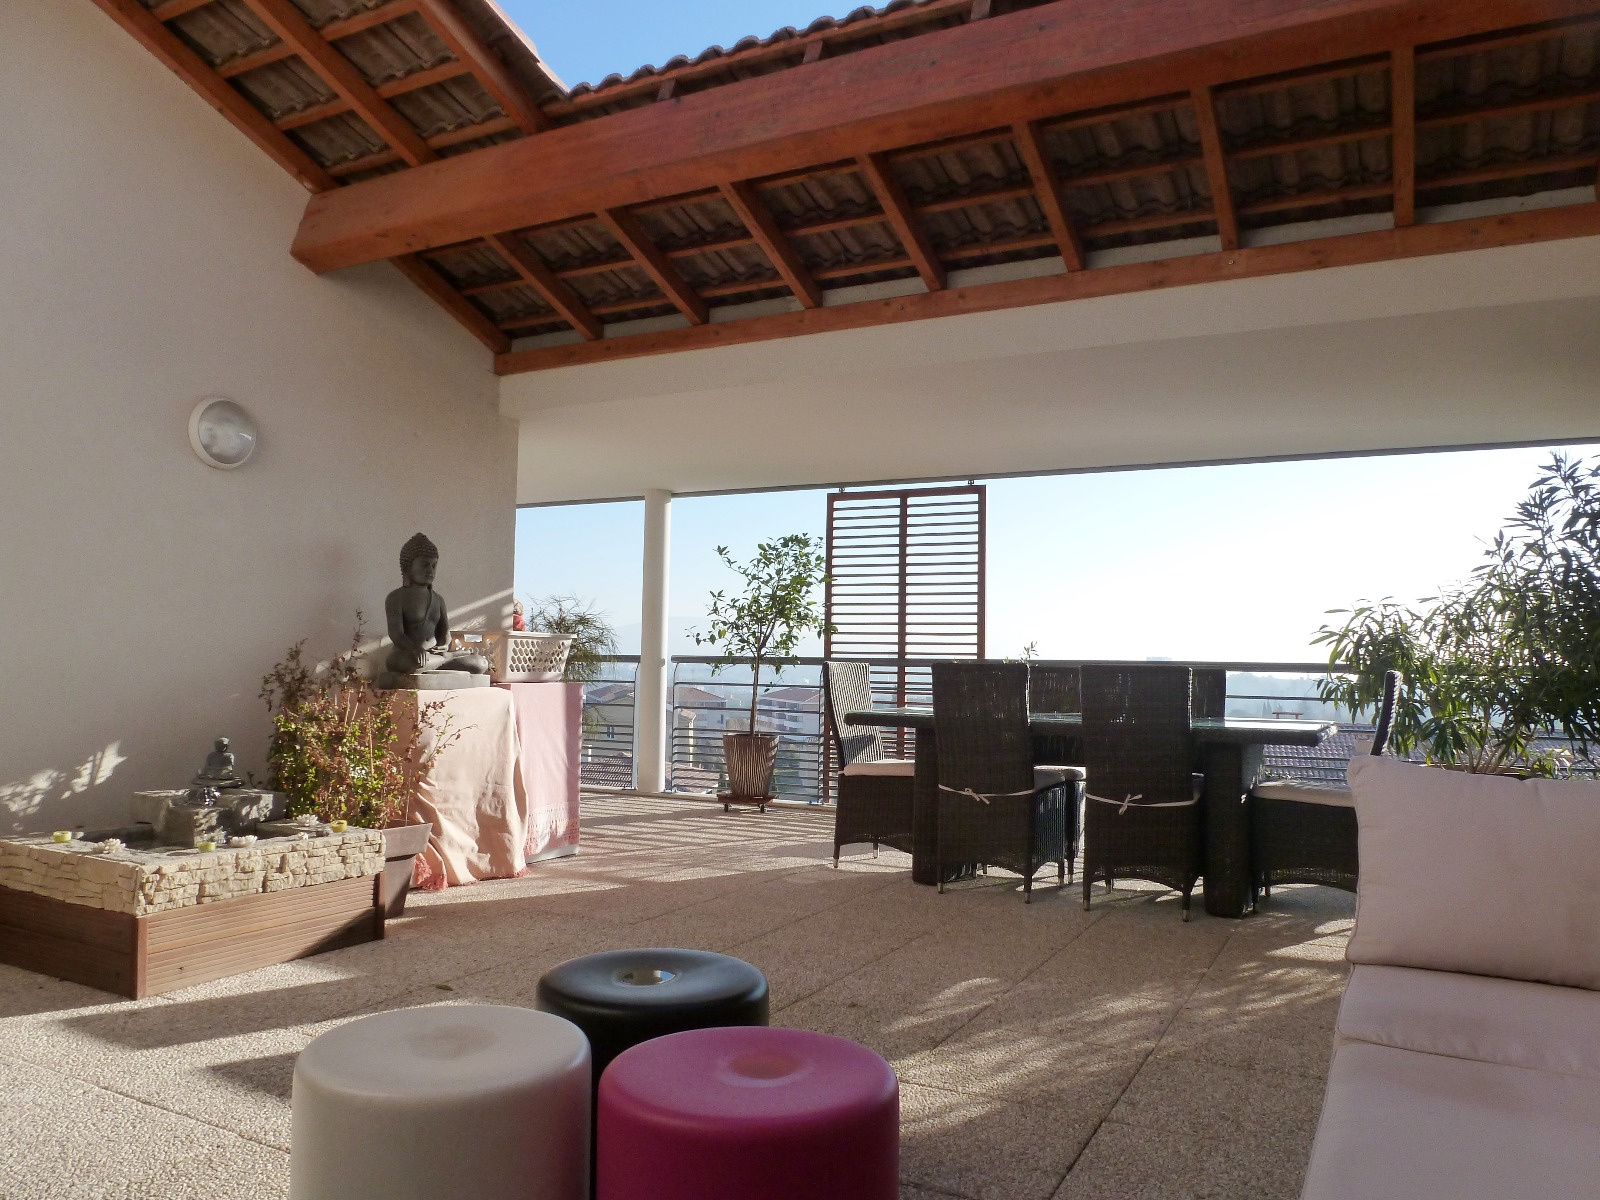 Location Appartement Toit Terrasse Marseille T4 Terrasse 60m² Garages Parking Toit Terrasse Chateau Gombert 13013 Marseille